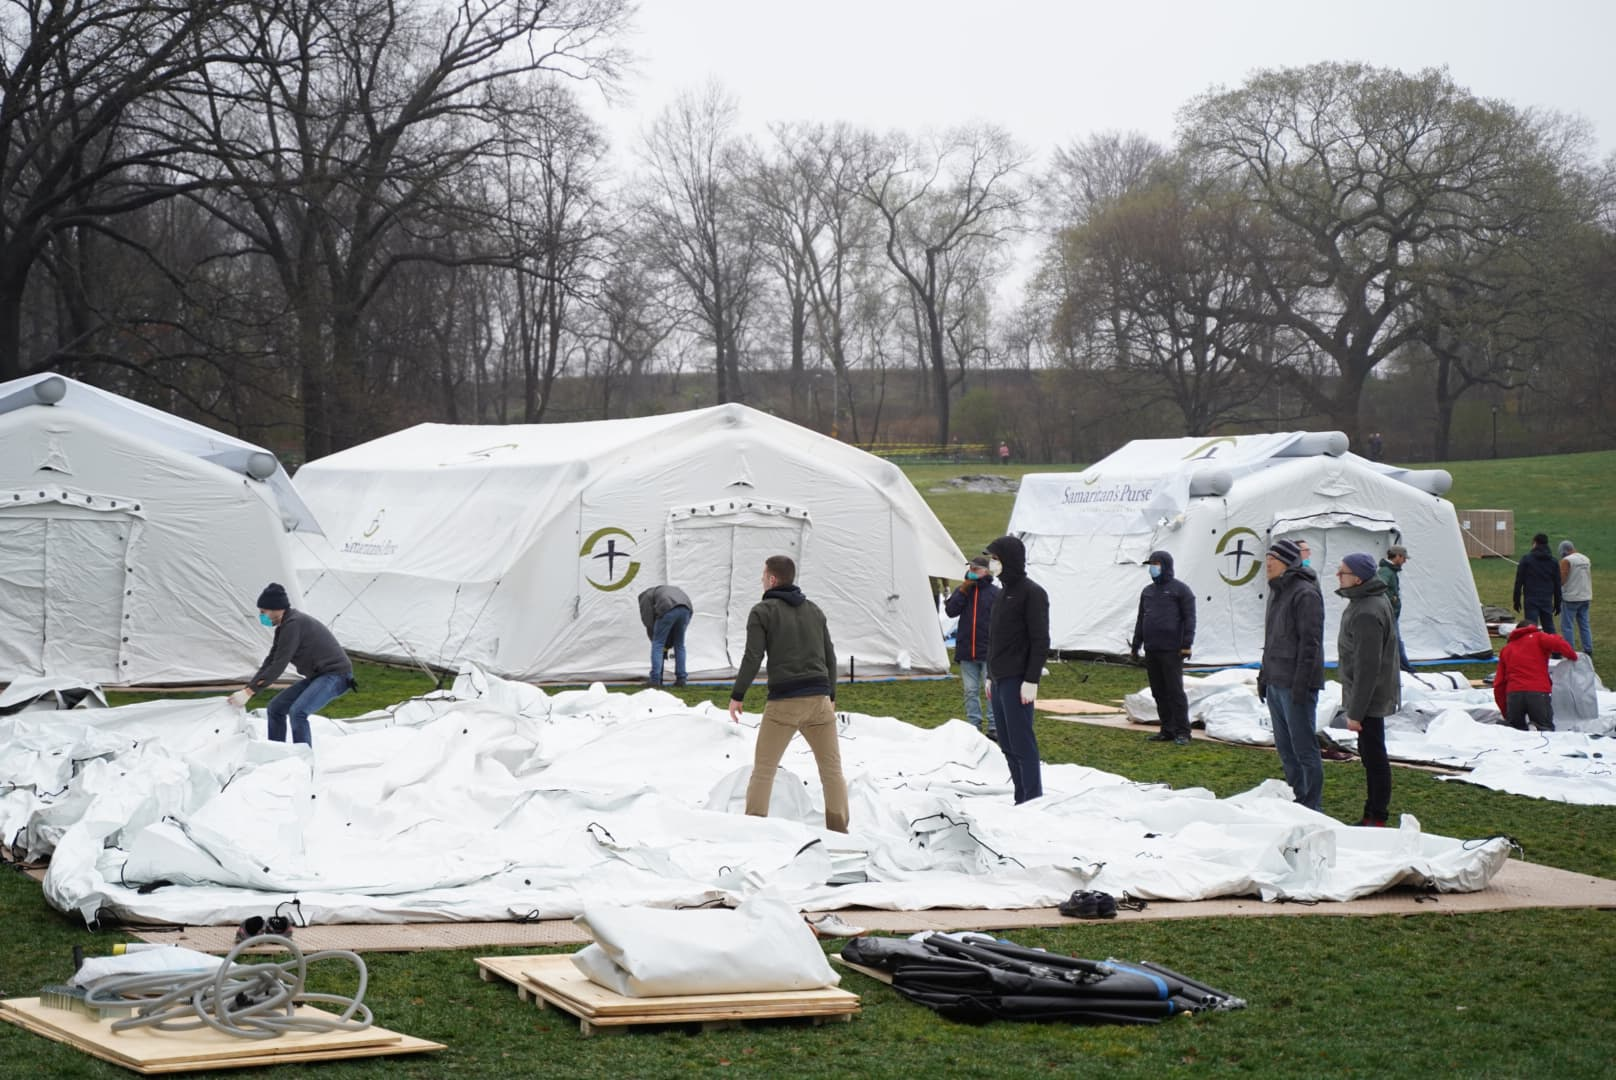 Staff and local volunteers work hard to set up the Emergency Field Hospital in Central Park.